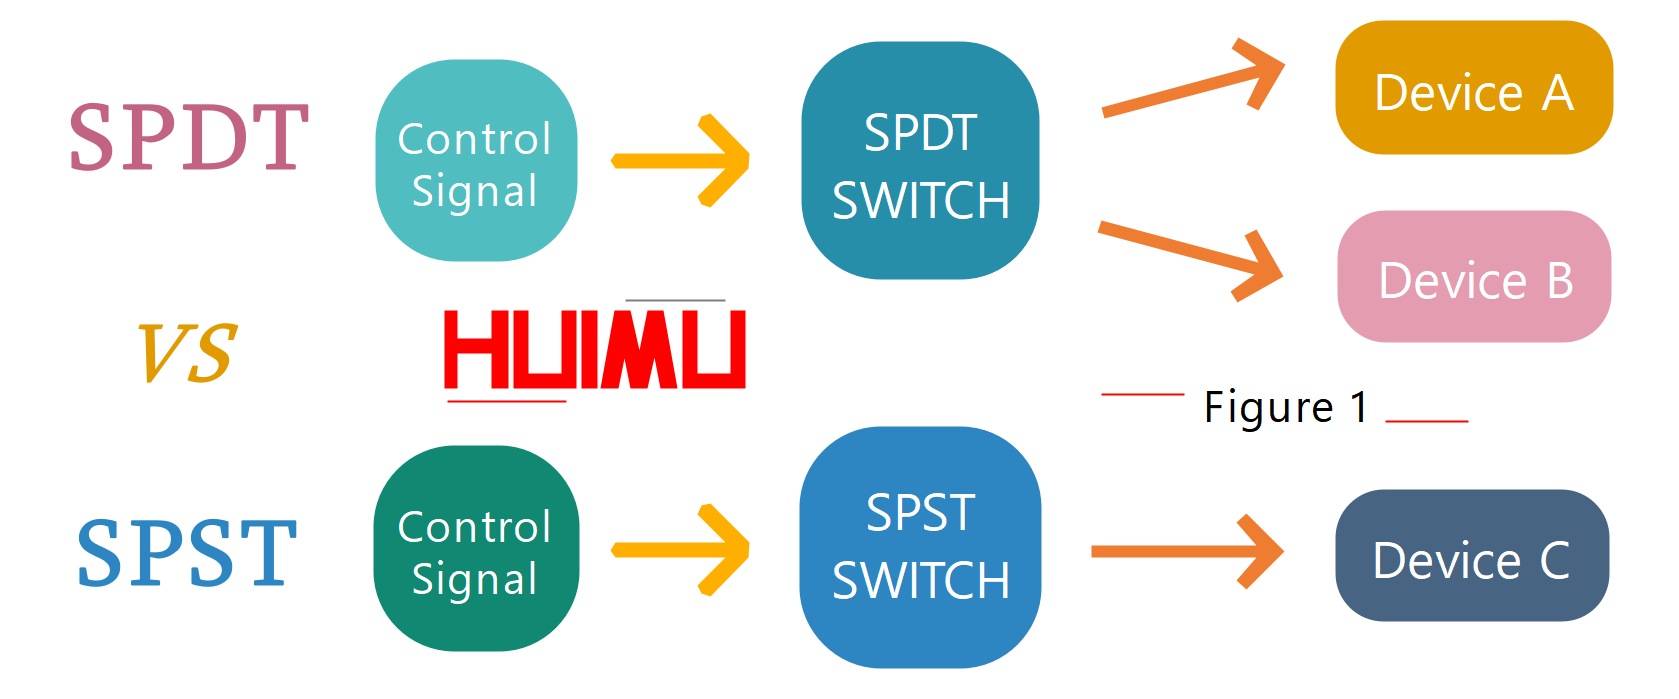 what is single pole double throw? what does single pole double throw mean? spst spdt switch, spst and spdt, spst vs spdt relay, difference between spst and spdt. More detail via www.@huimultd.com